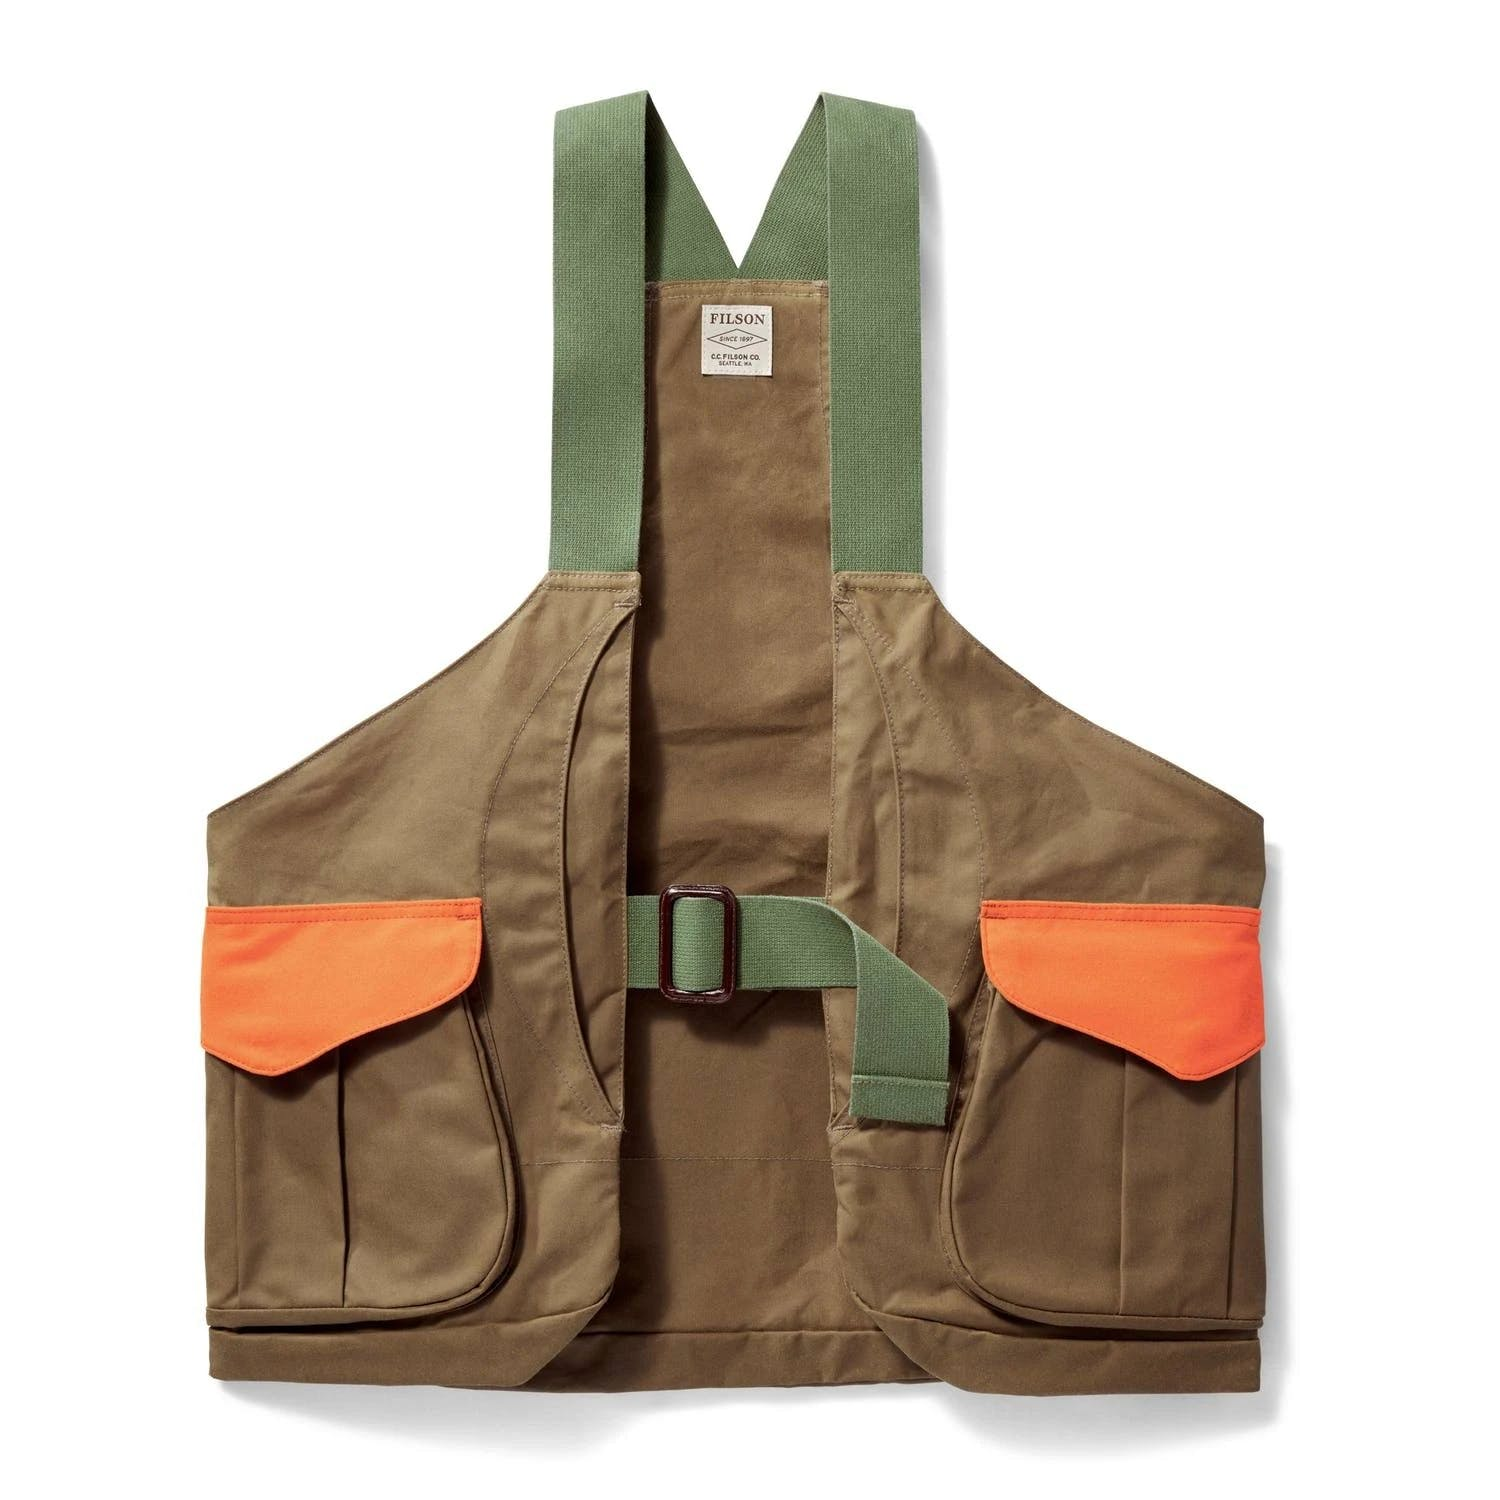 Filson - Shelter Cloth Tan Blaze Orange Strap Vest